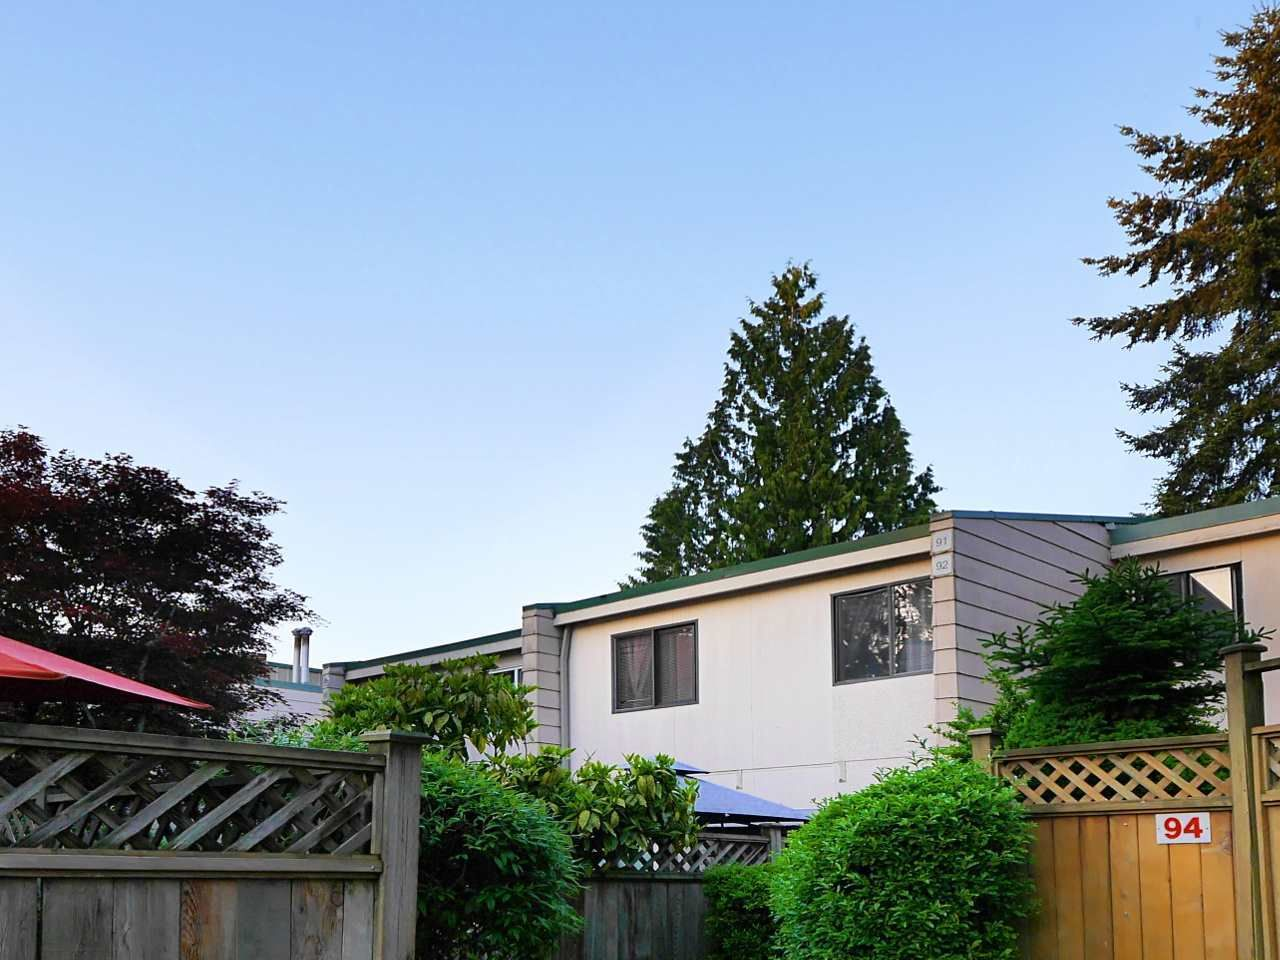 """Photo 1: Photos: 92 10505 153 Street in Surrey: Guildford Townhouse for sale in """"Guildford Mews"""" (North Surrey)  : MLS®# R2519248"""